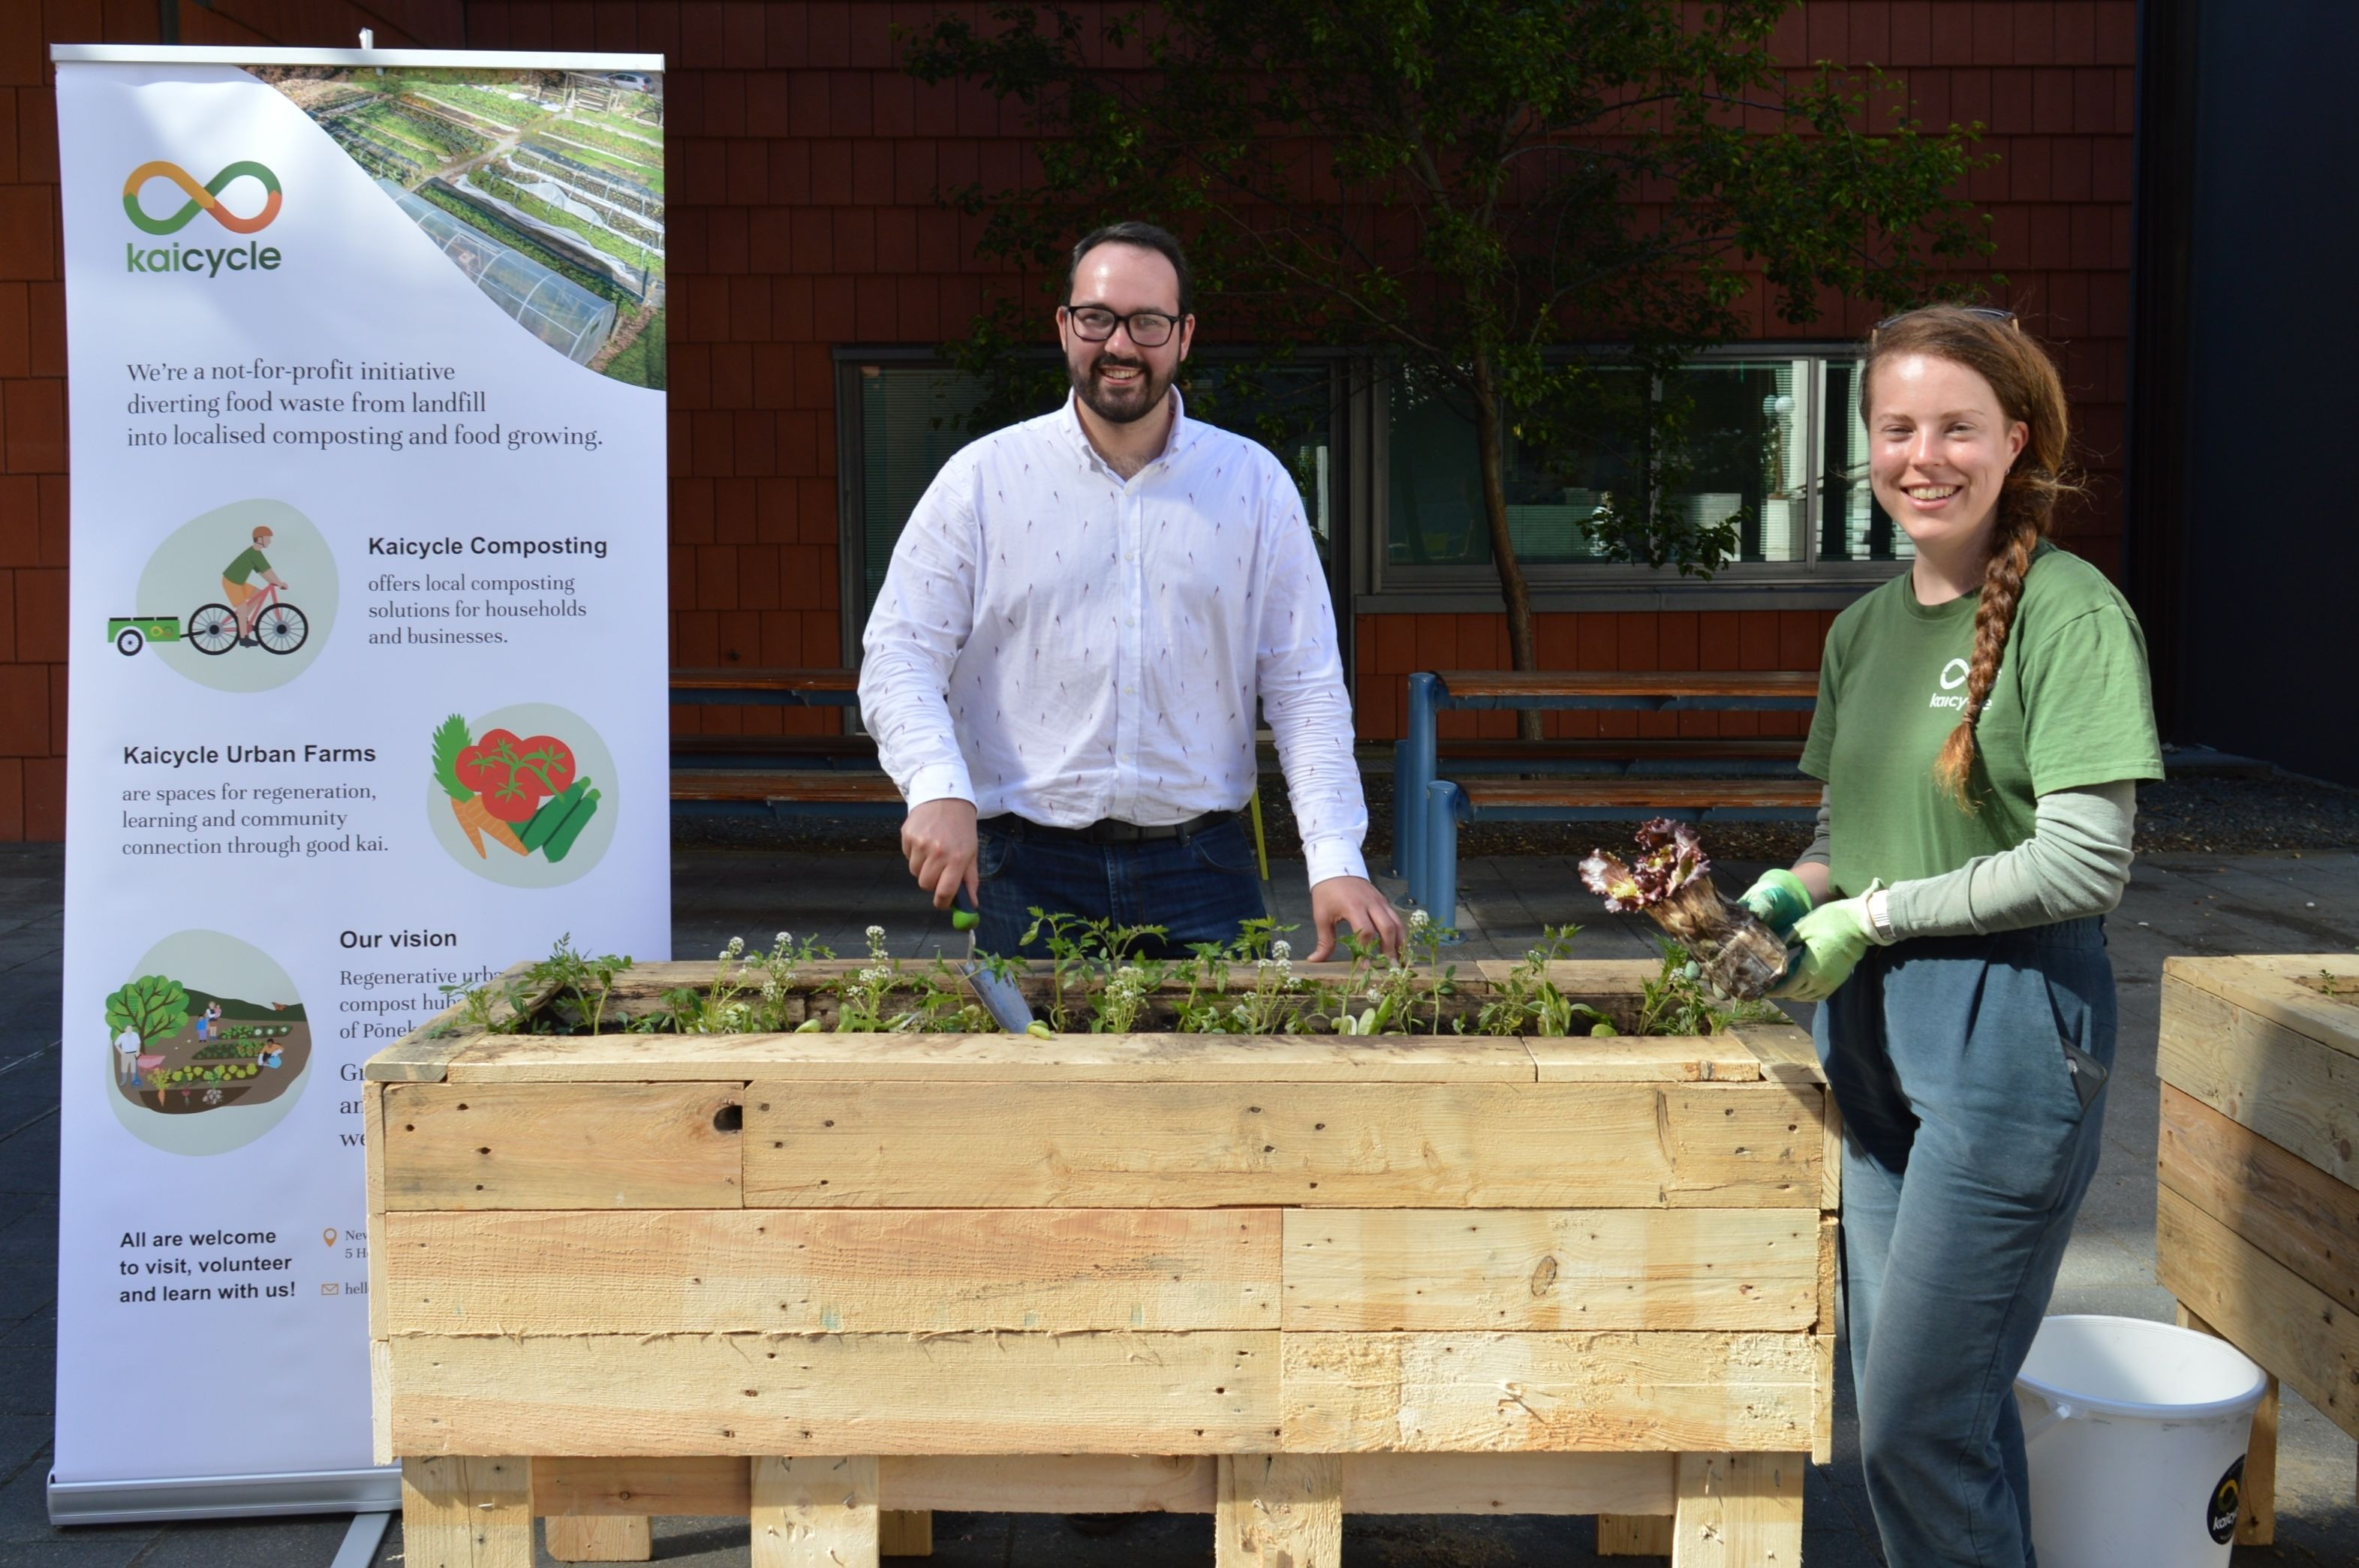 CCDHB sustainability advisor Jay Hadfield and Kaicycle coordinator Kate Walmsley growing their budding friendship with a little light gardening.